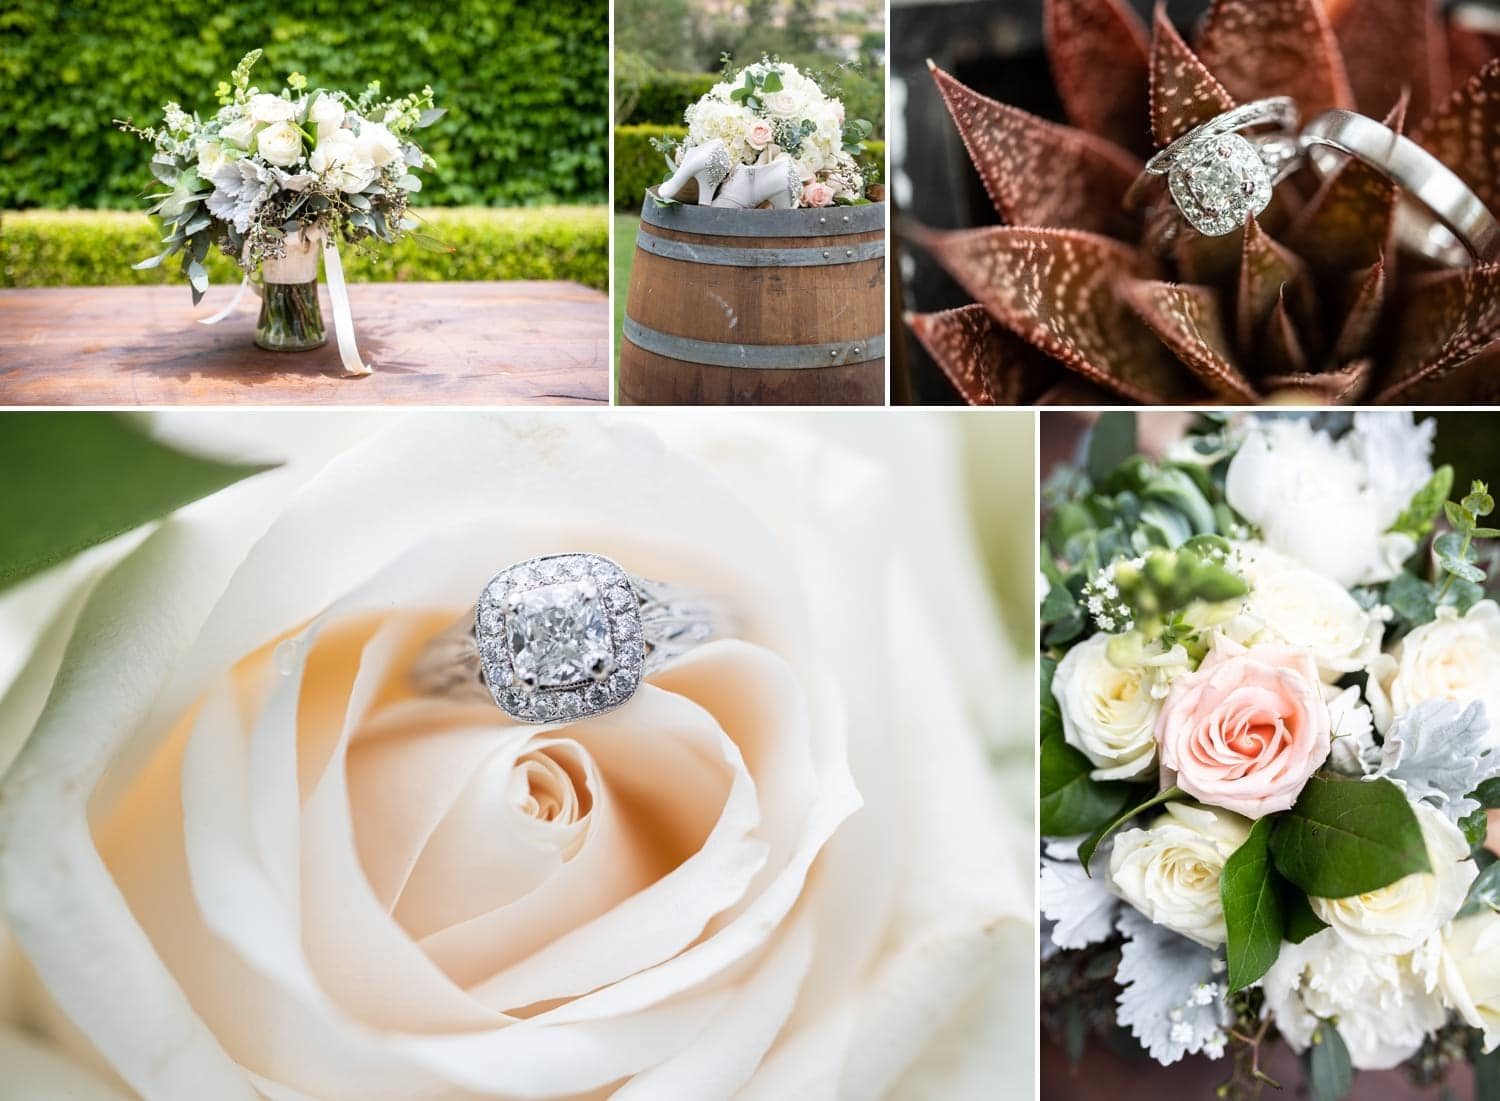 Bouquet and wedding ring on a wine barrel.